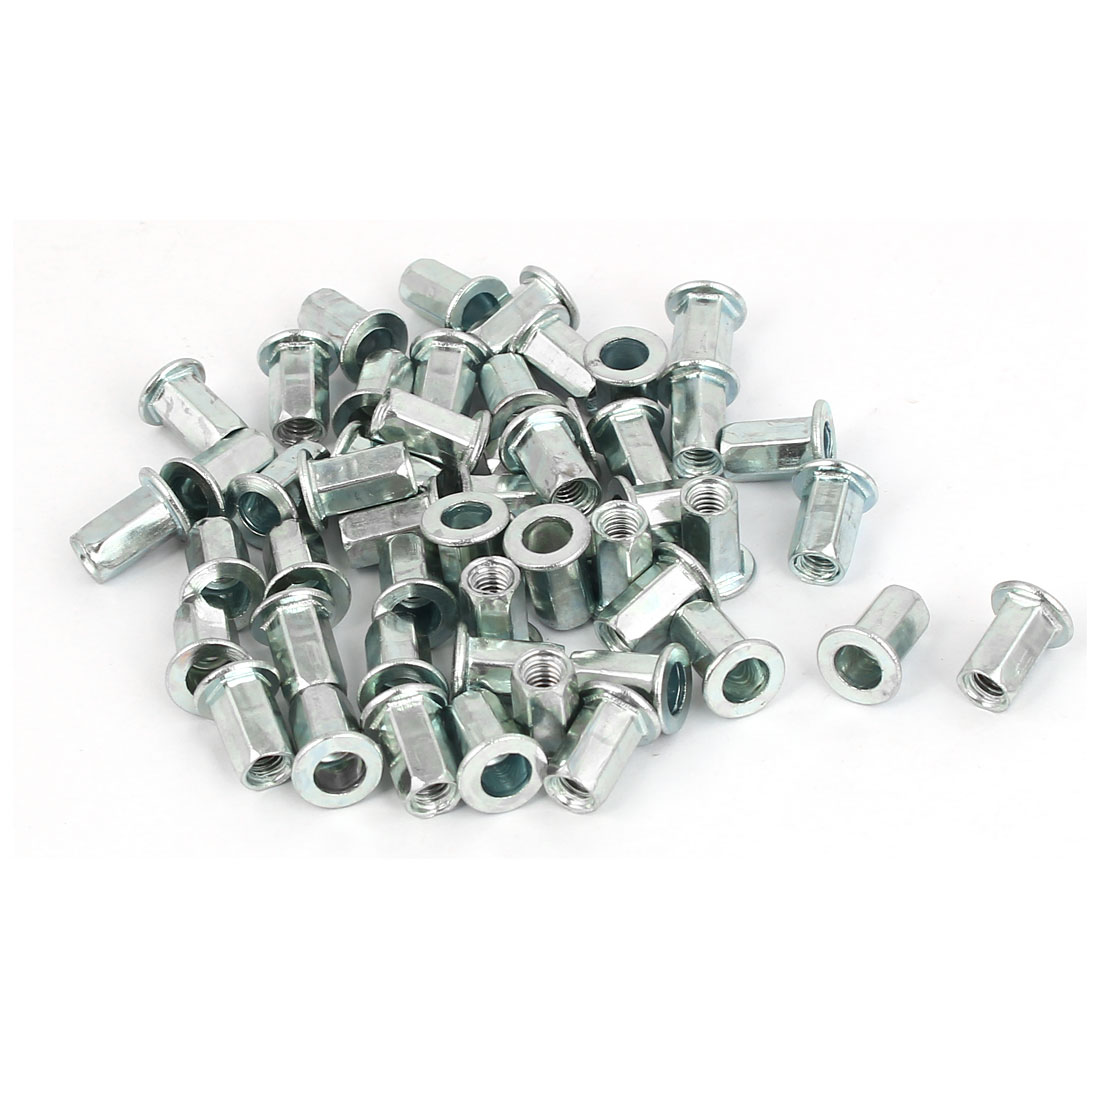 M4 x 11mm Flat Head Hex Body Open End Blind Rivet Nuts Nutserts Fasteners 50 Pcs